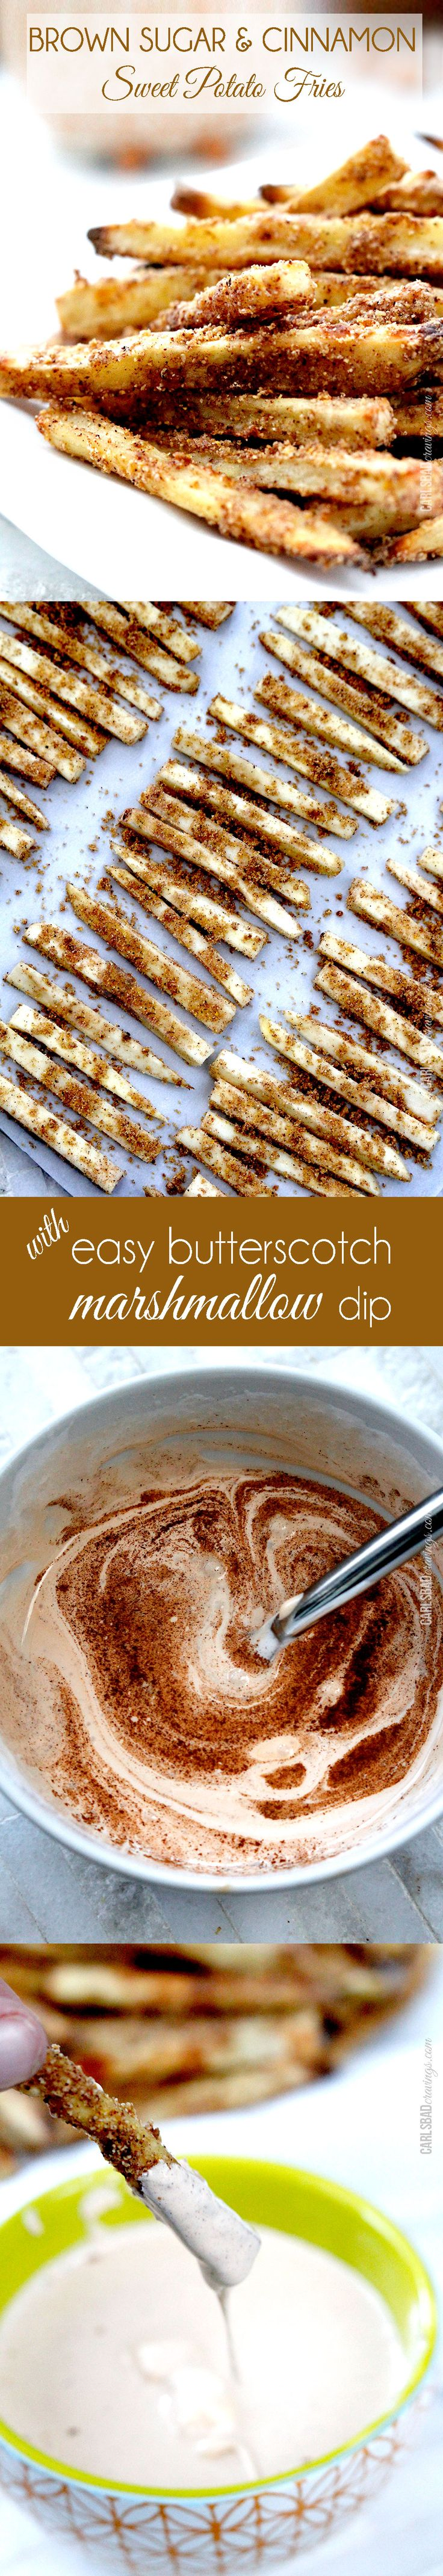 Easy, delicious healthy snack or side - OR make these fries a fun dessert or appetizer with the easy AMAZING butterscotch marshmallow dip. You won't be able to stop eating these!